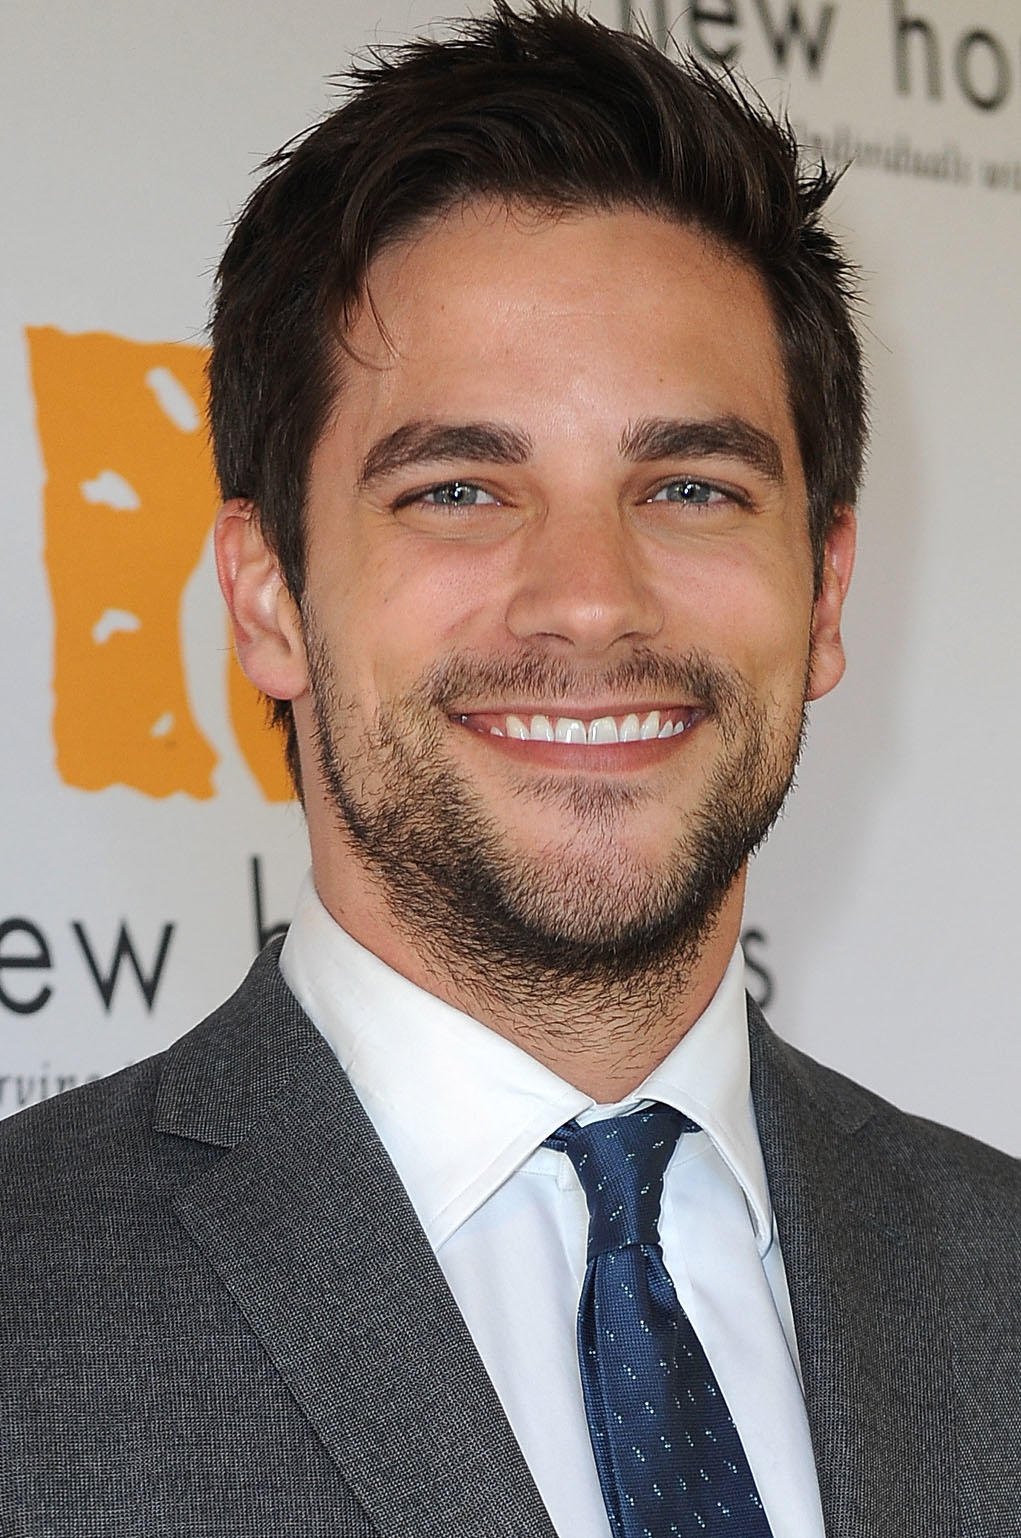 Brant Daugherty at New Horizons